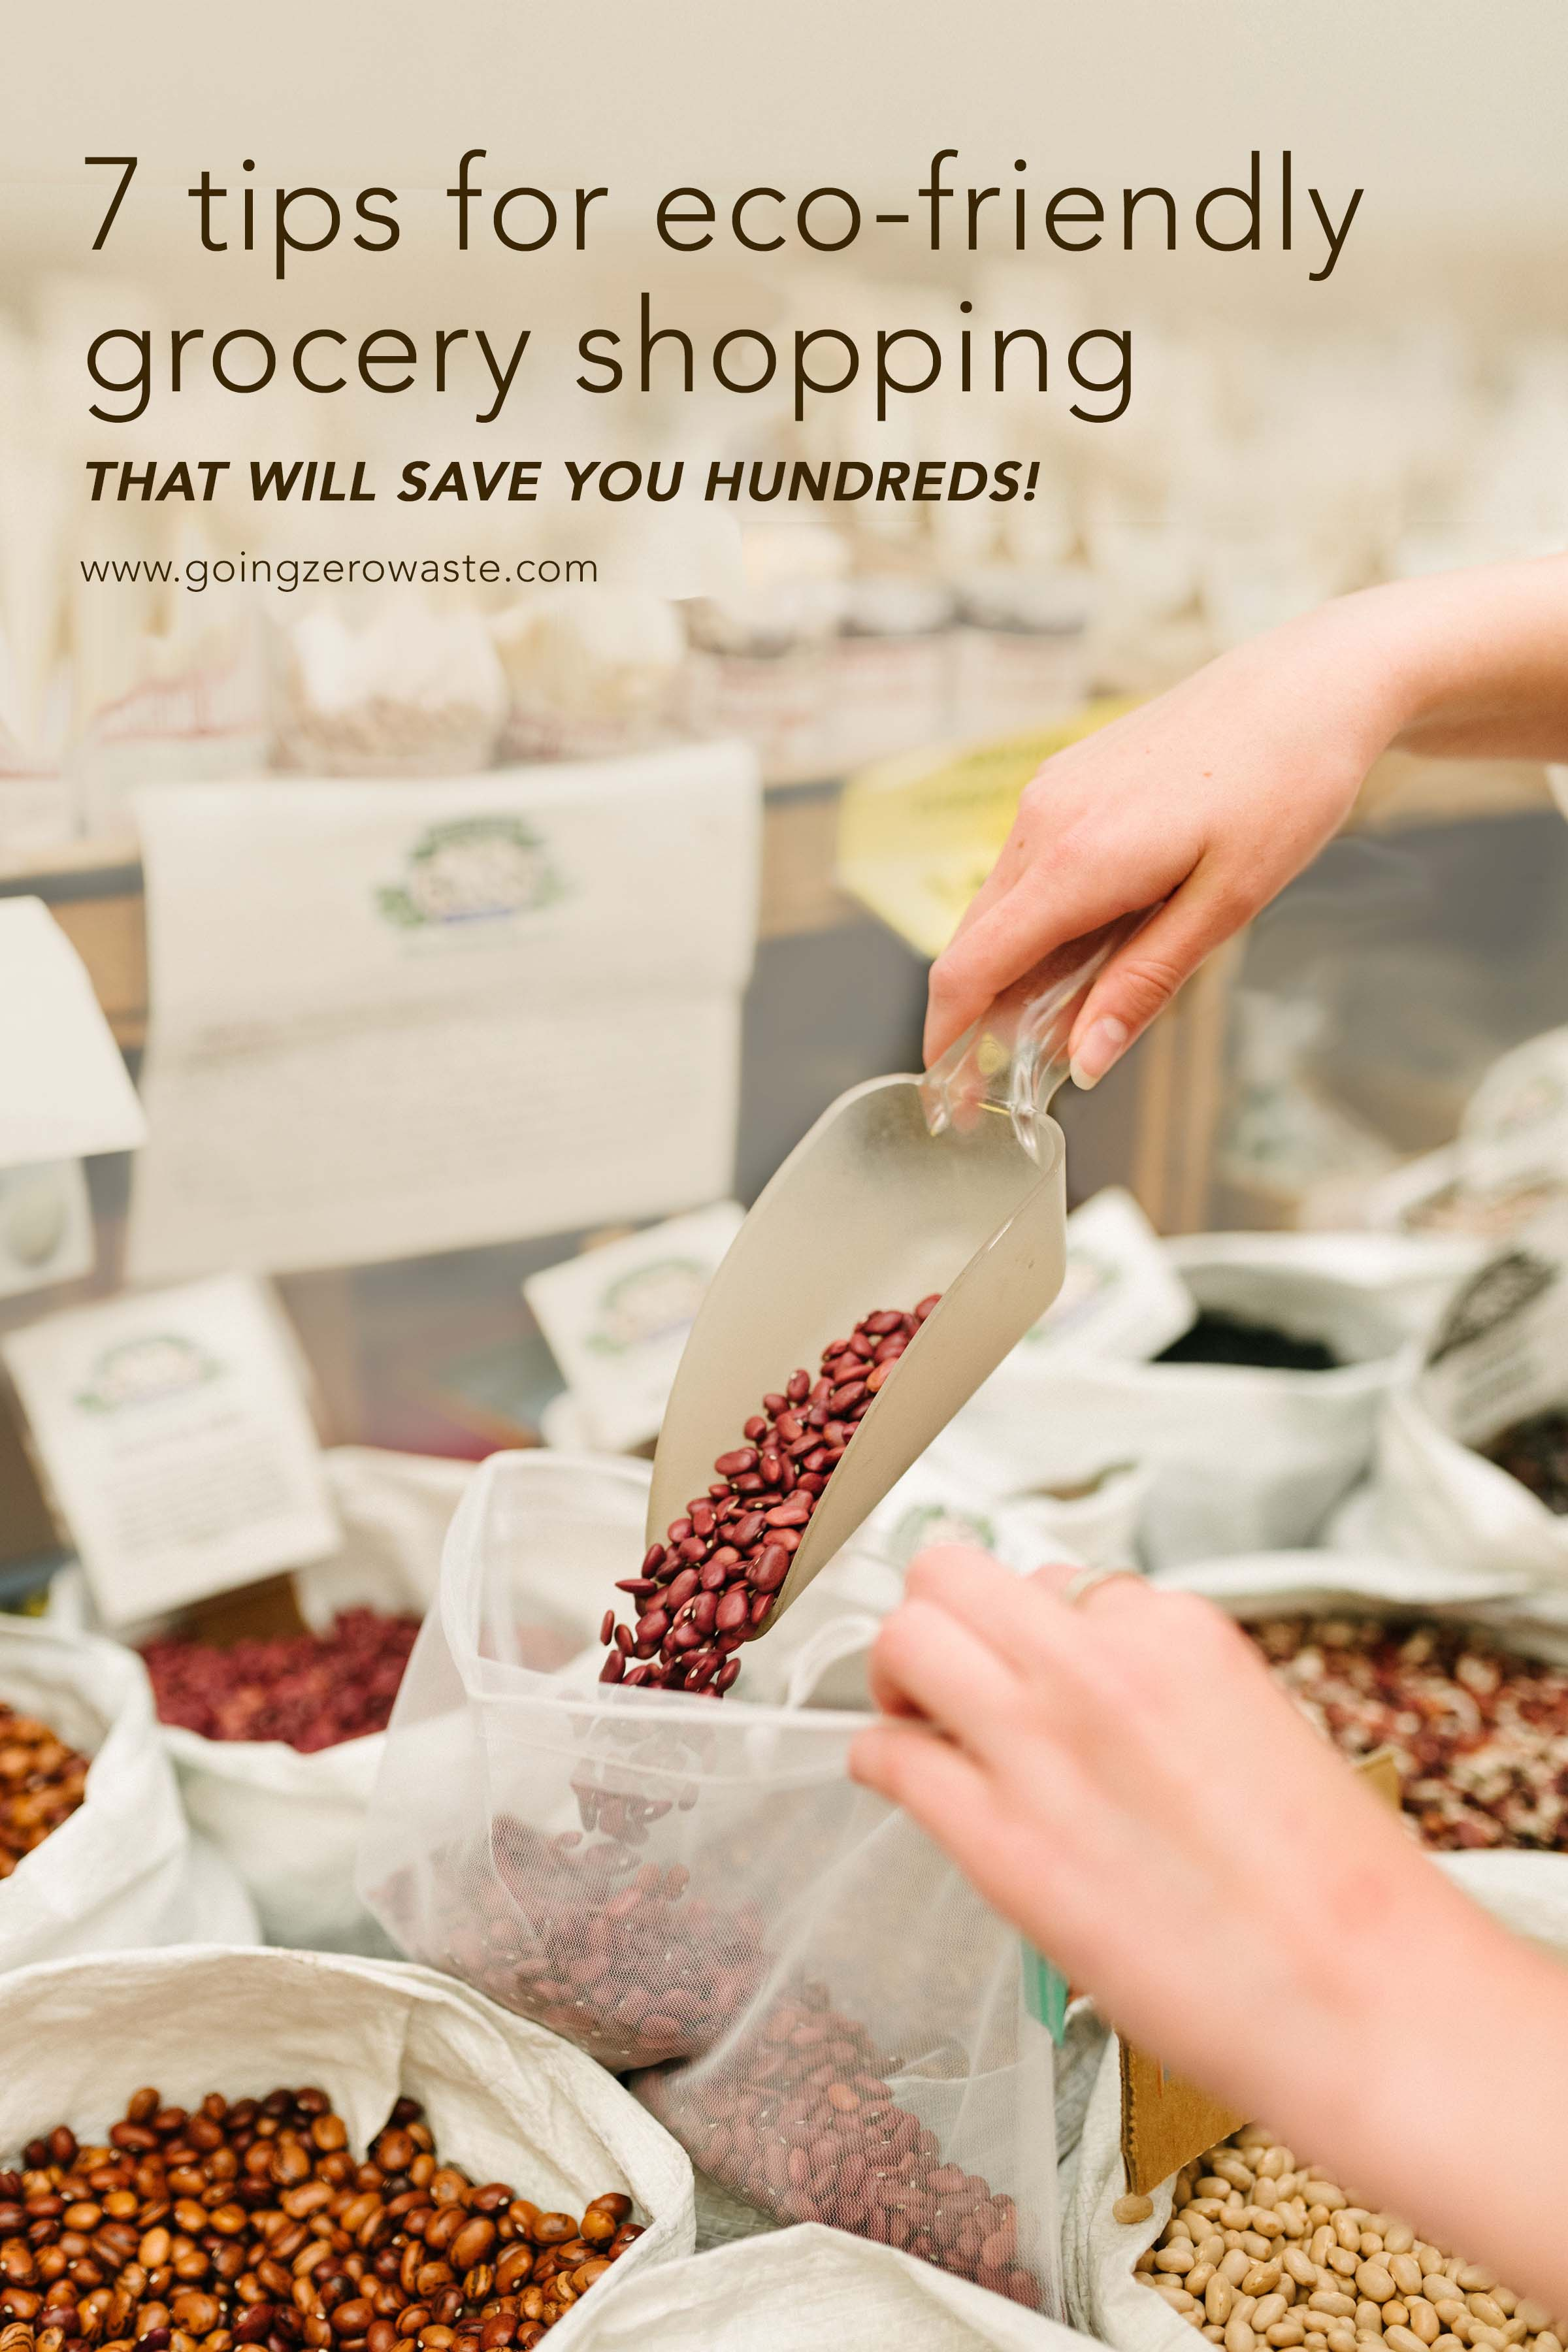 7 tips for eco-friendly grocery shopping that will save you hundreds! from www.goingzerowaste.com #zerowaste #ecofriendly #groceryshopping #savemoney #withoutcoupons #saveongroceries #howtosaveongroceries